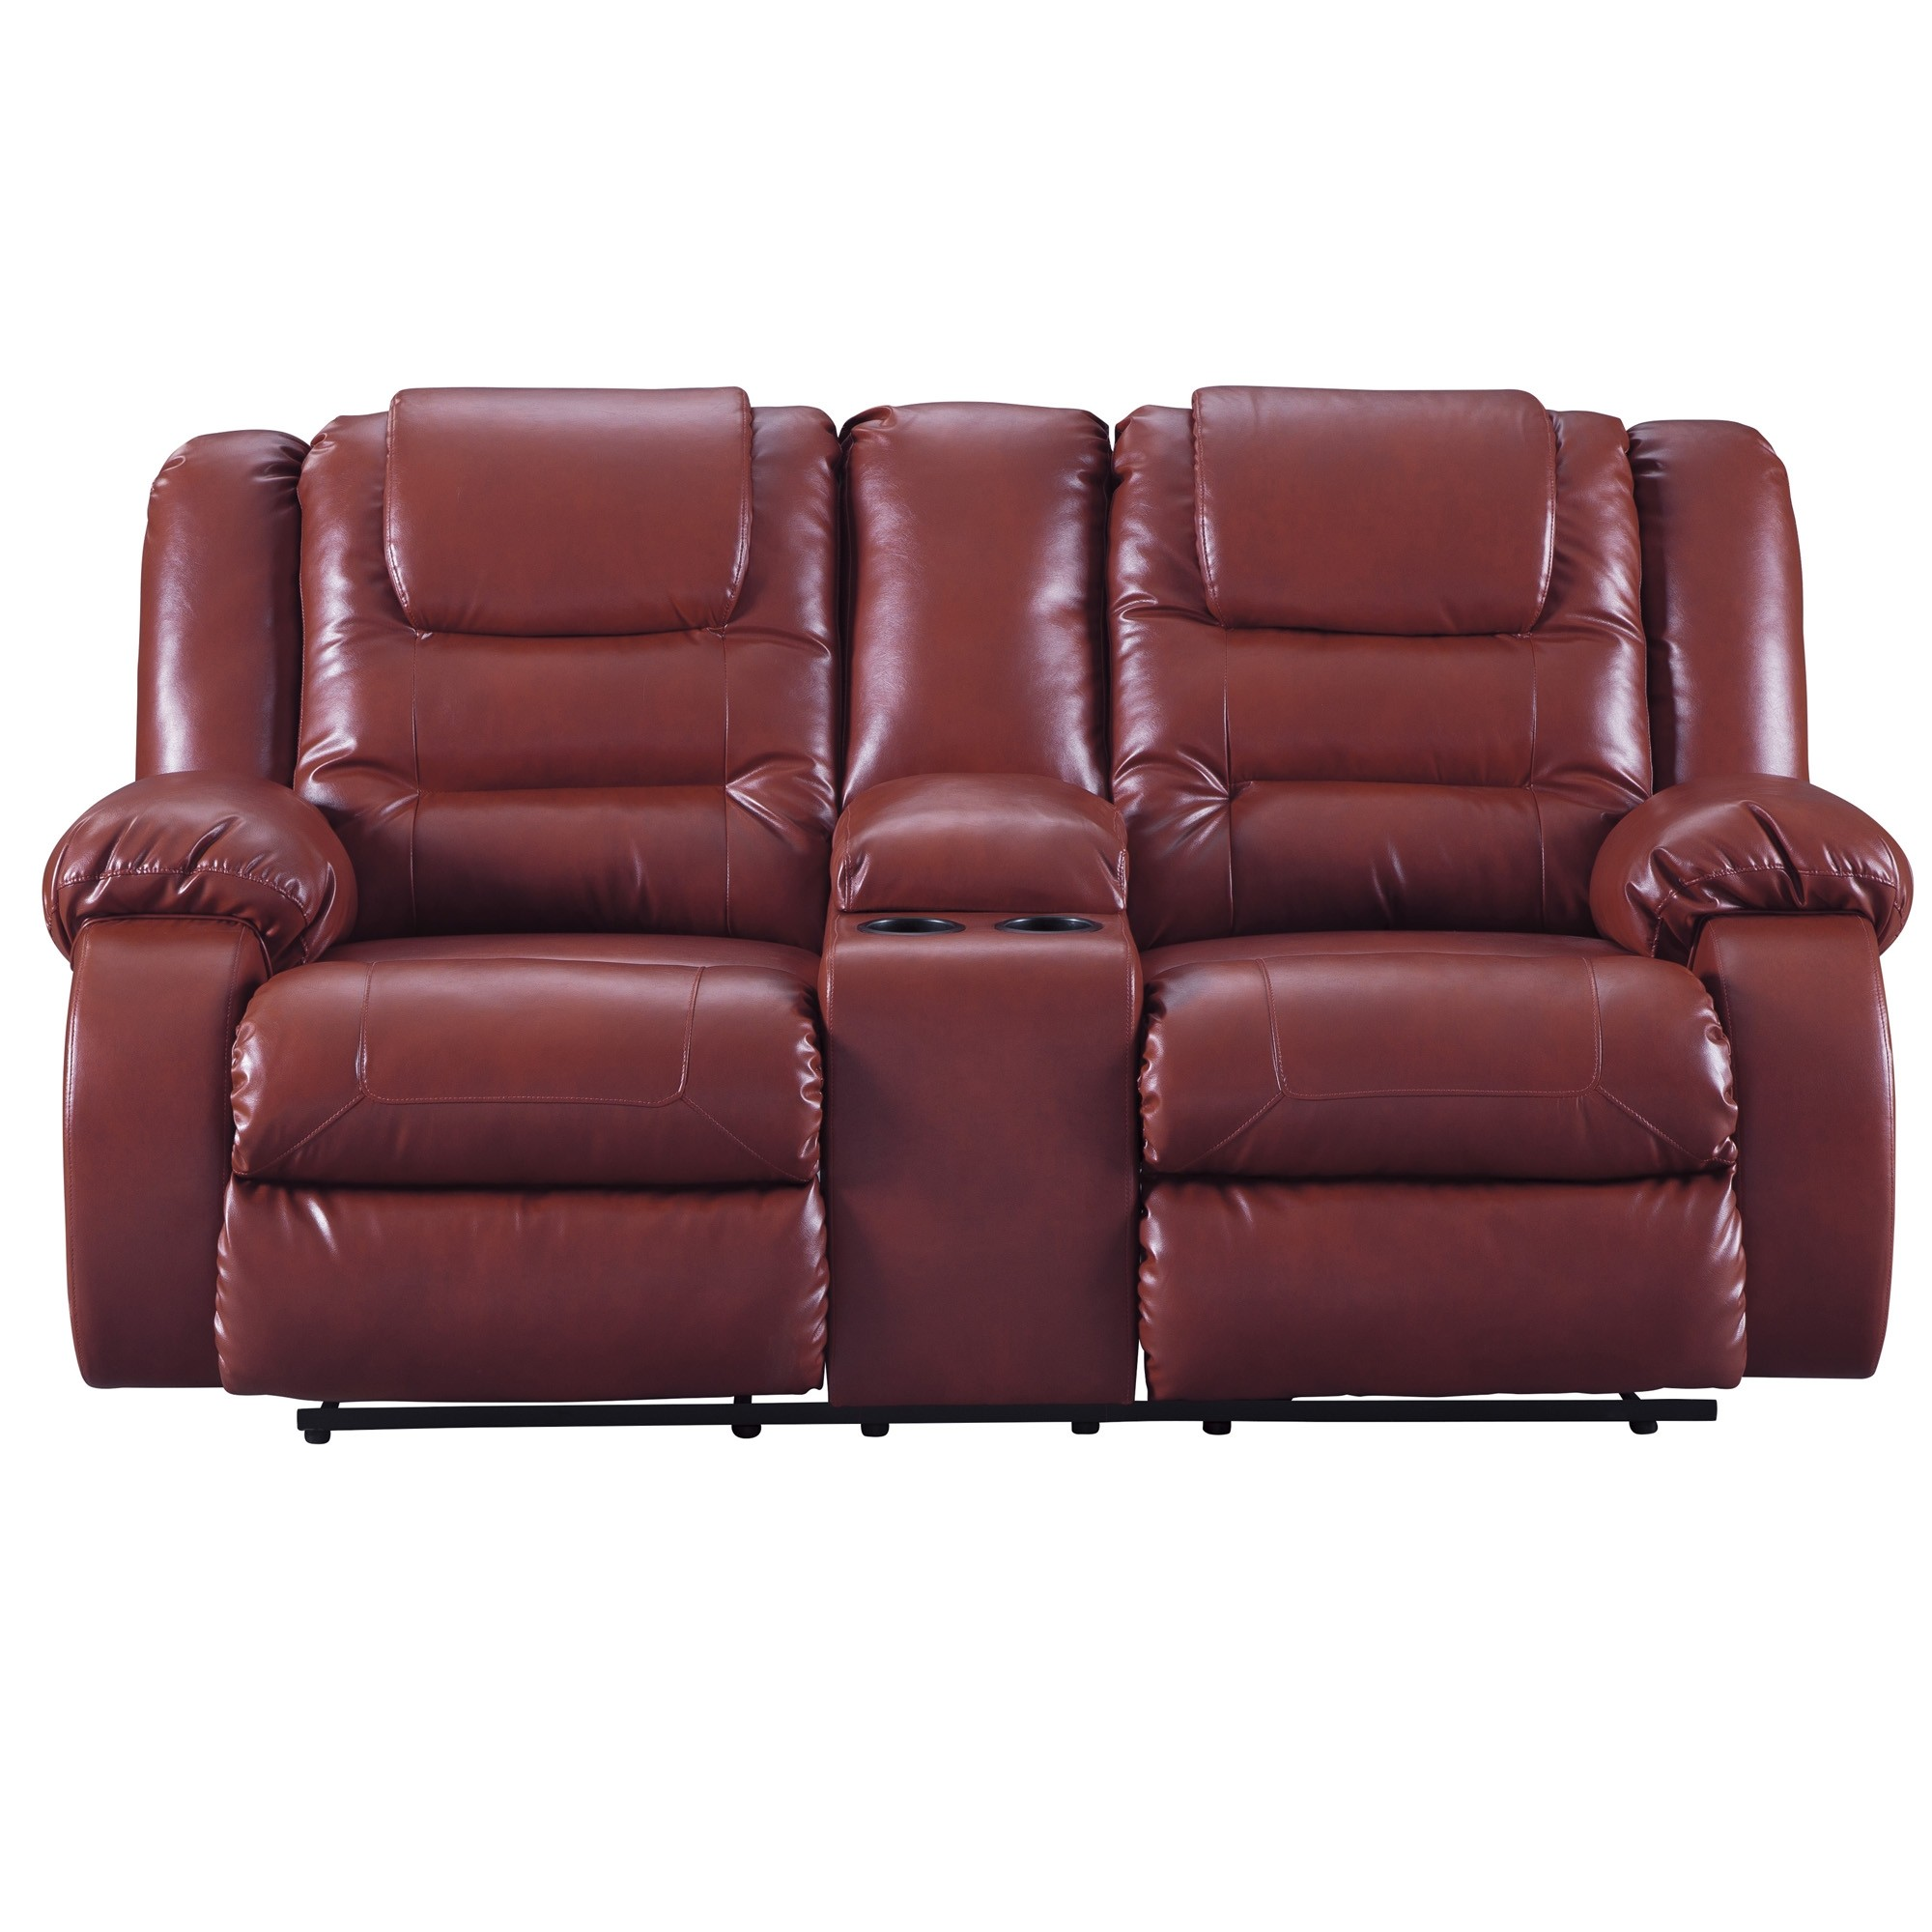 Furniture Websites With Free Shipping: Vacherie Salsa Reclining Sofa FREE SHIPPING!